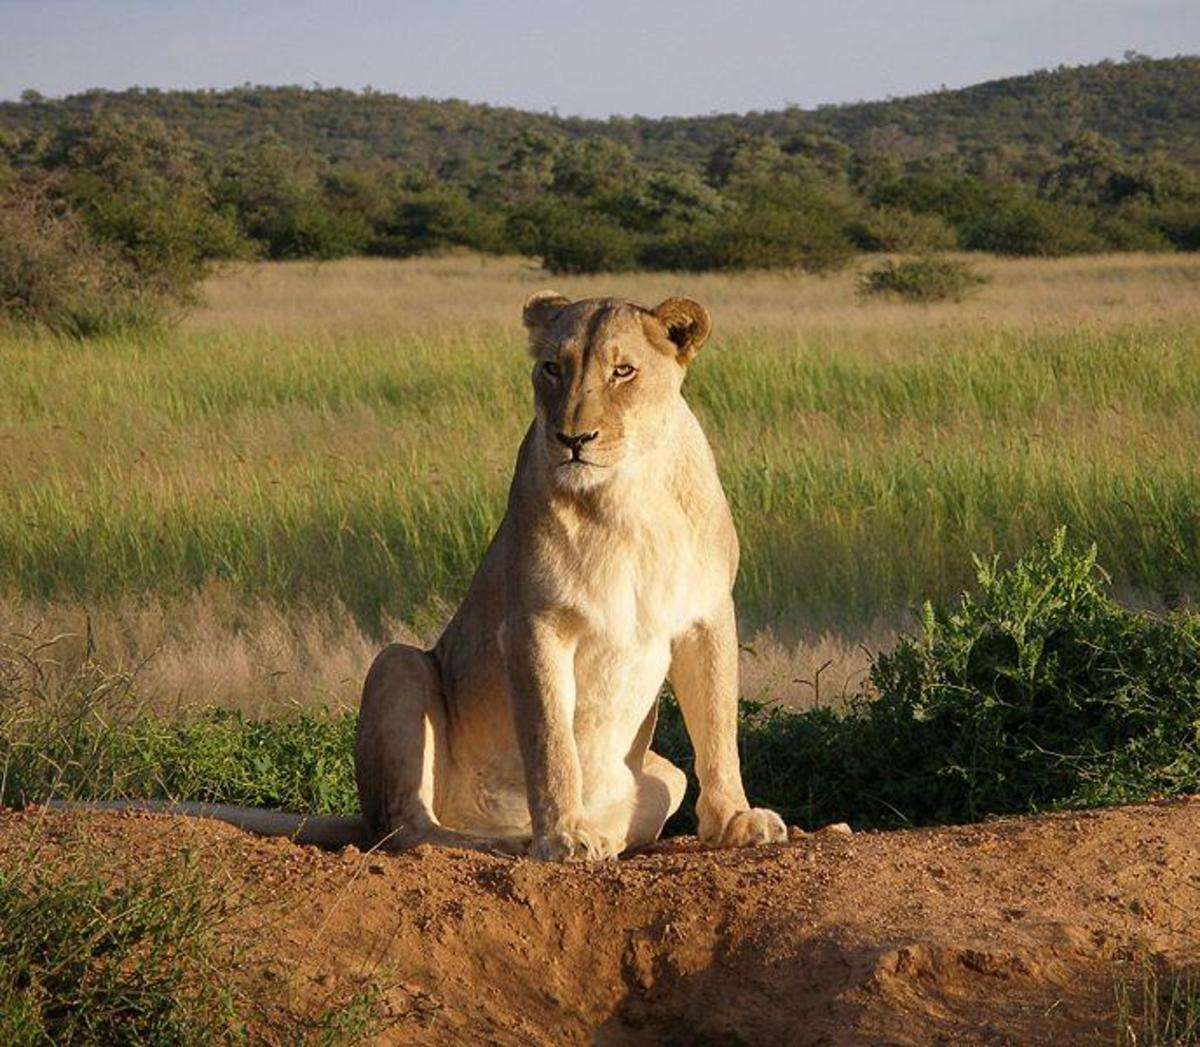 Lioness - she has no manes. She does most of the work in a pride. Image credit: Falense , Wikimedia commons